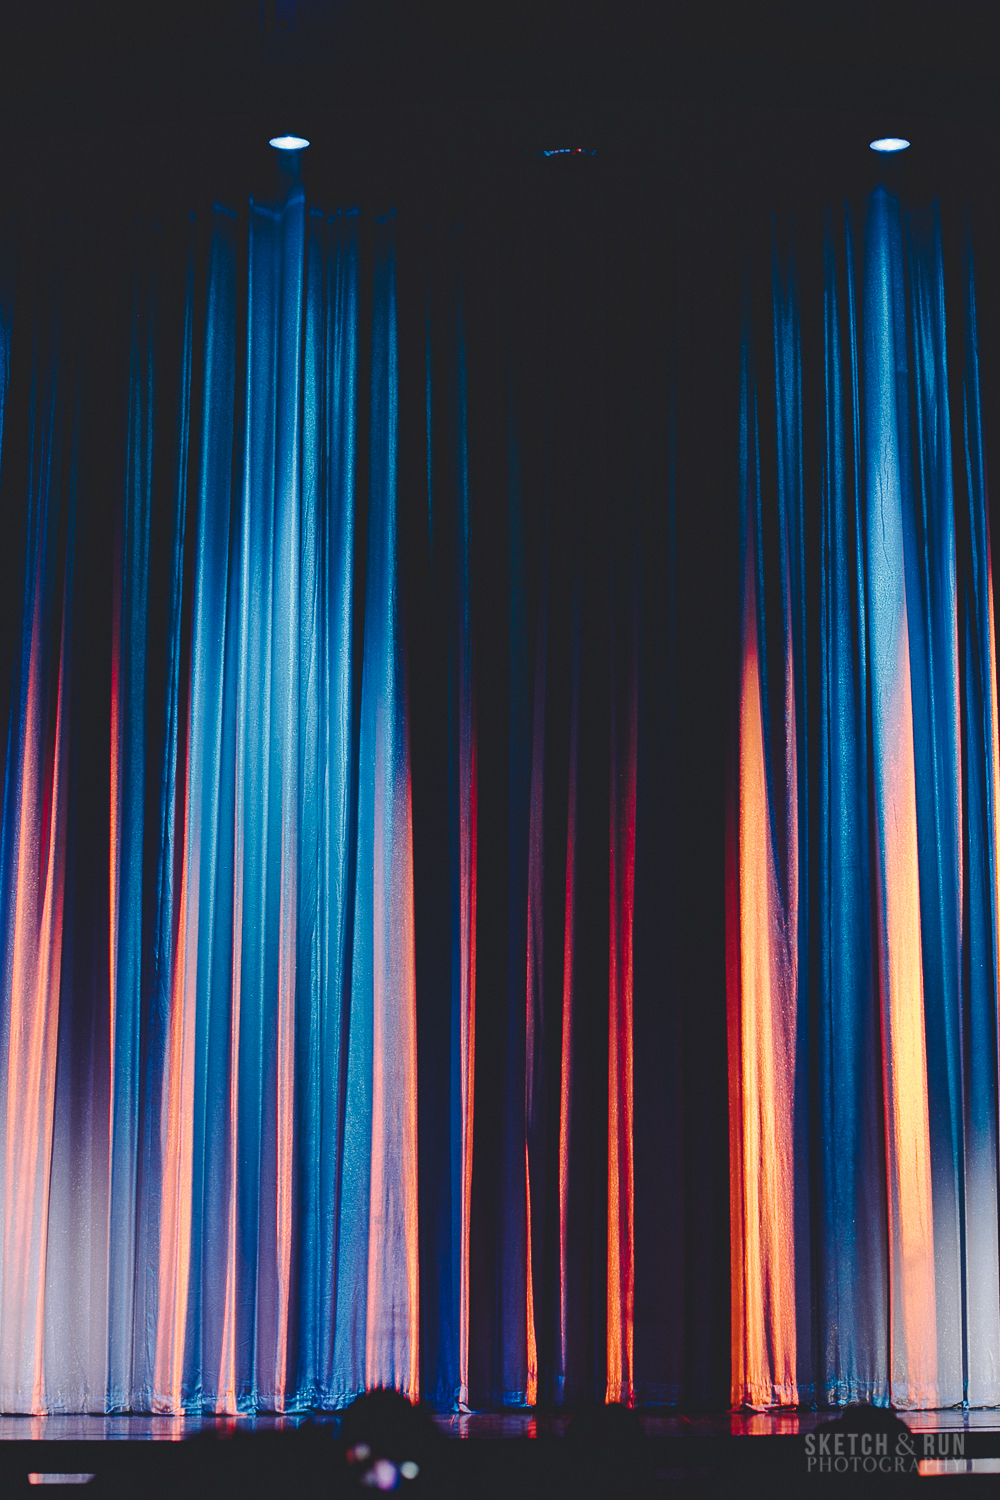 curtains, light, blue and orange